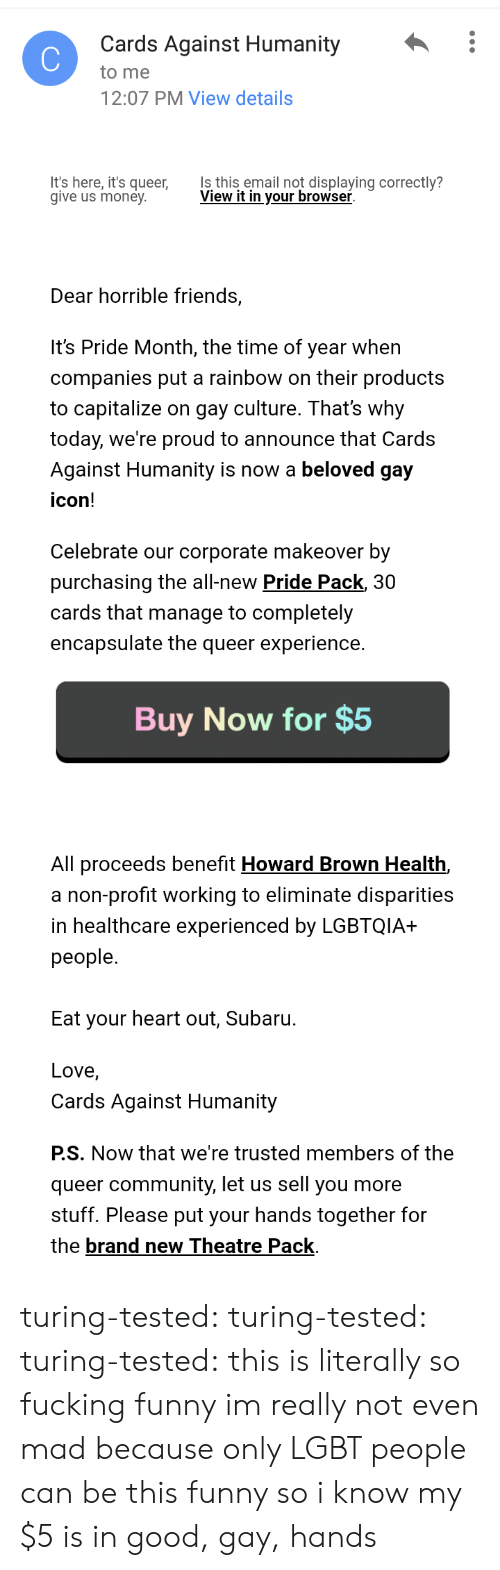 Its Here: Cards Against Humanity :  to me  2:07 PM View details  It's here, it's queer,  give us money  Is this email not displaying correctly?  View it in vour browser  Dear horrible friends,  It's Pride Month, the time of year when  companies put a rainbow on their products  to capitalize on gay culture. That's why  today, we're proud to announce that Cards  Against Humanity is now a beloved gay  icon!  Celebrate our corporate makeover by  purchasing the all-new Pride Pack, 30  cards that manage to completely  encapsulate the queer experience.   Buy Now for $5  All proceeds benefit Howard Brown Health,  a non-profit working to eliminate disparities  in healthcare experienced by LGBTQIA+  people.  Eat your heart out, Subaru.  Love,  Cards Against Humanity  PS. Now that we're trusted members of the  queer community, let us sell you more  stuff. Please put your hands together for  the brand new Theatre Pack turing-tested: turing-tested:   turing-tested:  this is literally so fucking funny    im really not even mad because only LGBT people can be this funny so i know my $5 is in good, gay, hands